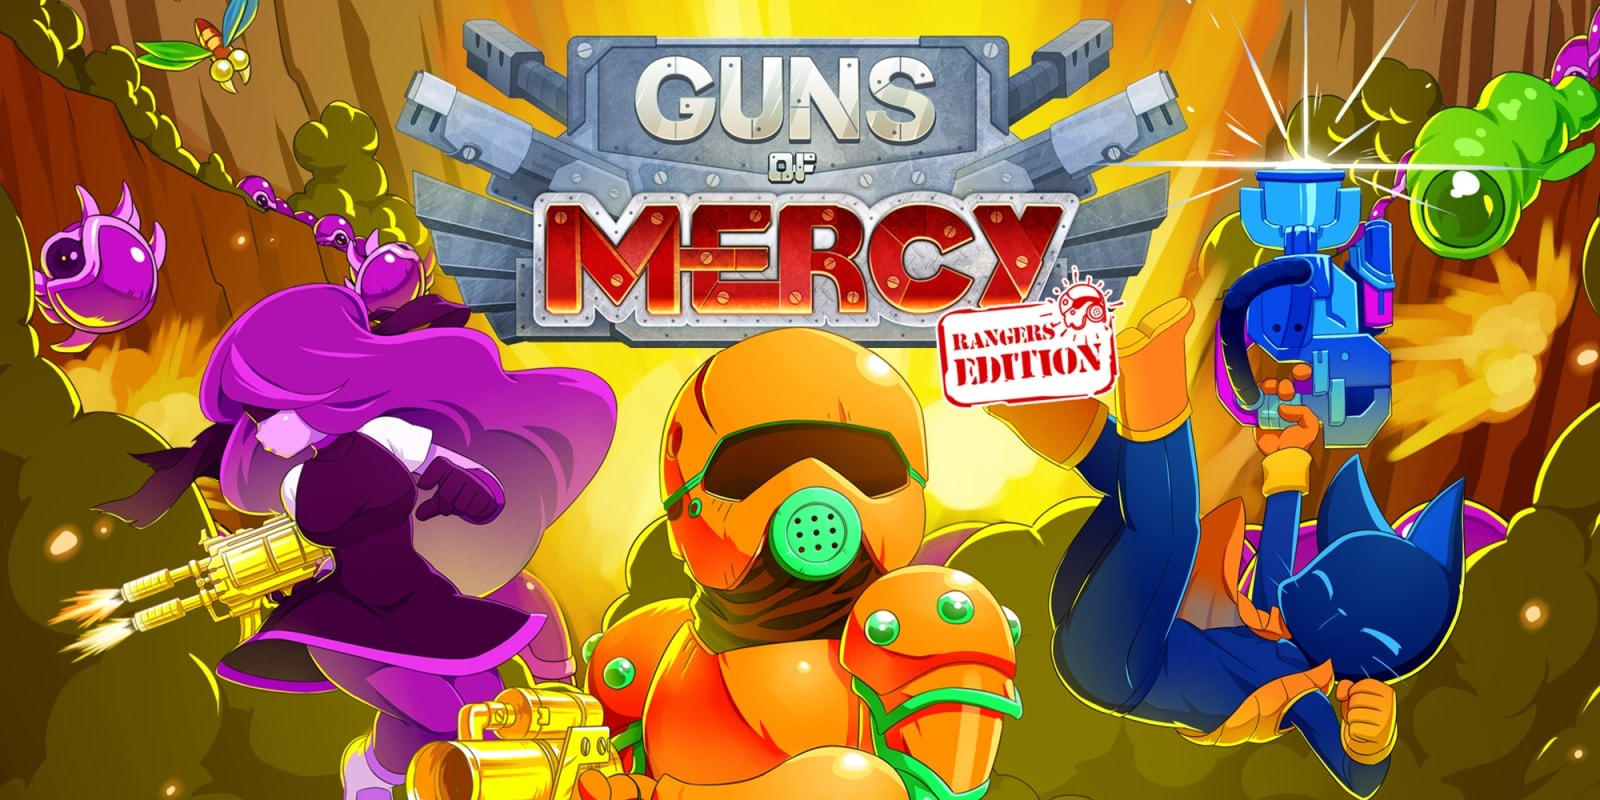 Guns of Mercy - Rangers Edition Nintendo Switch